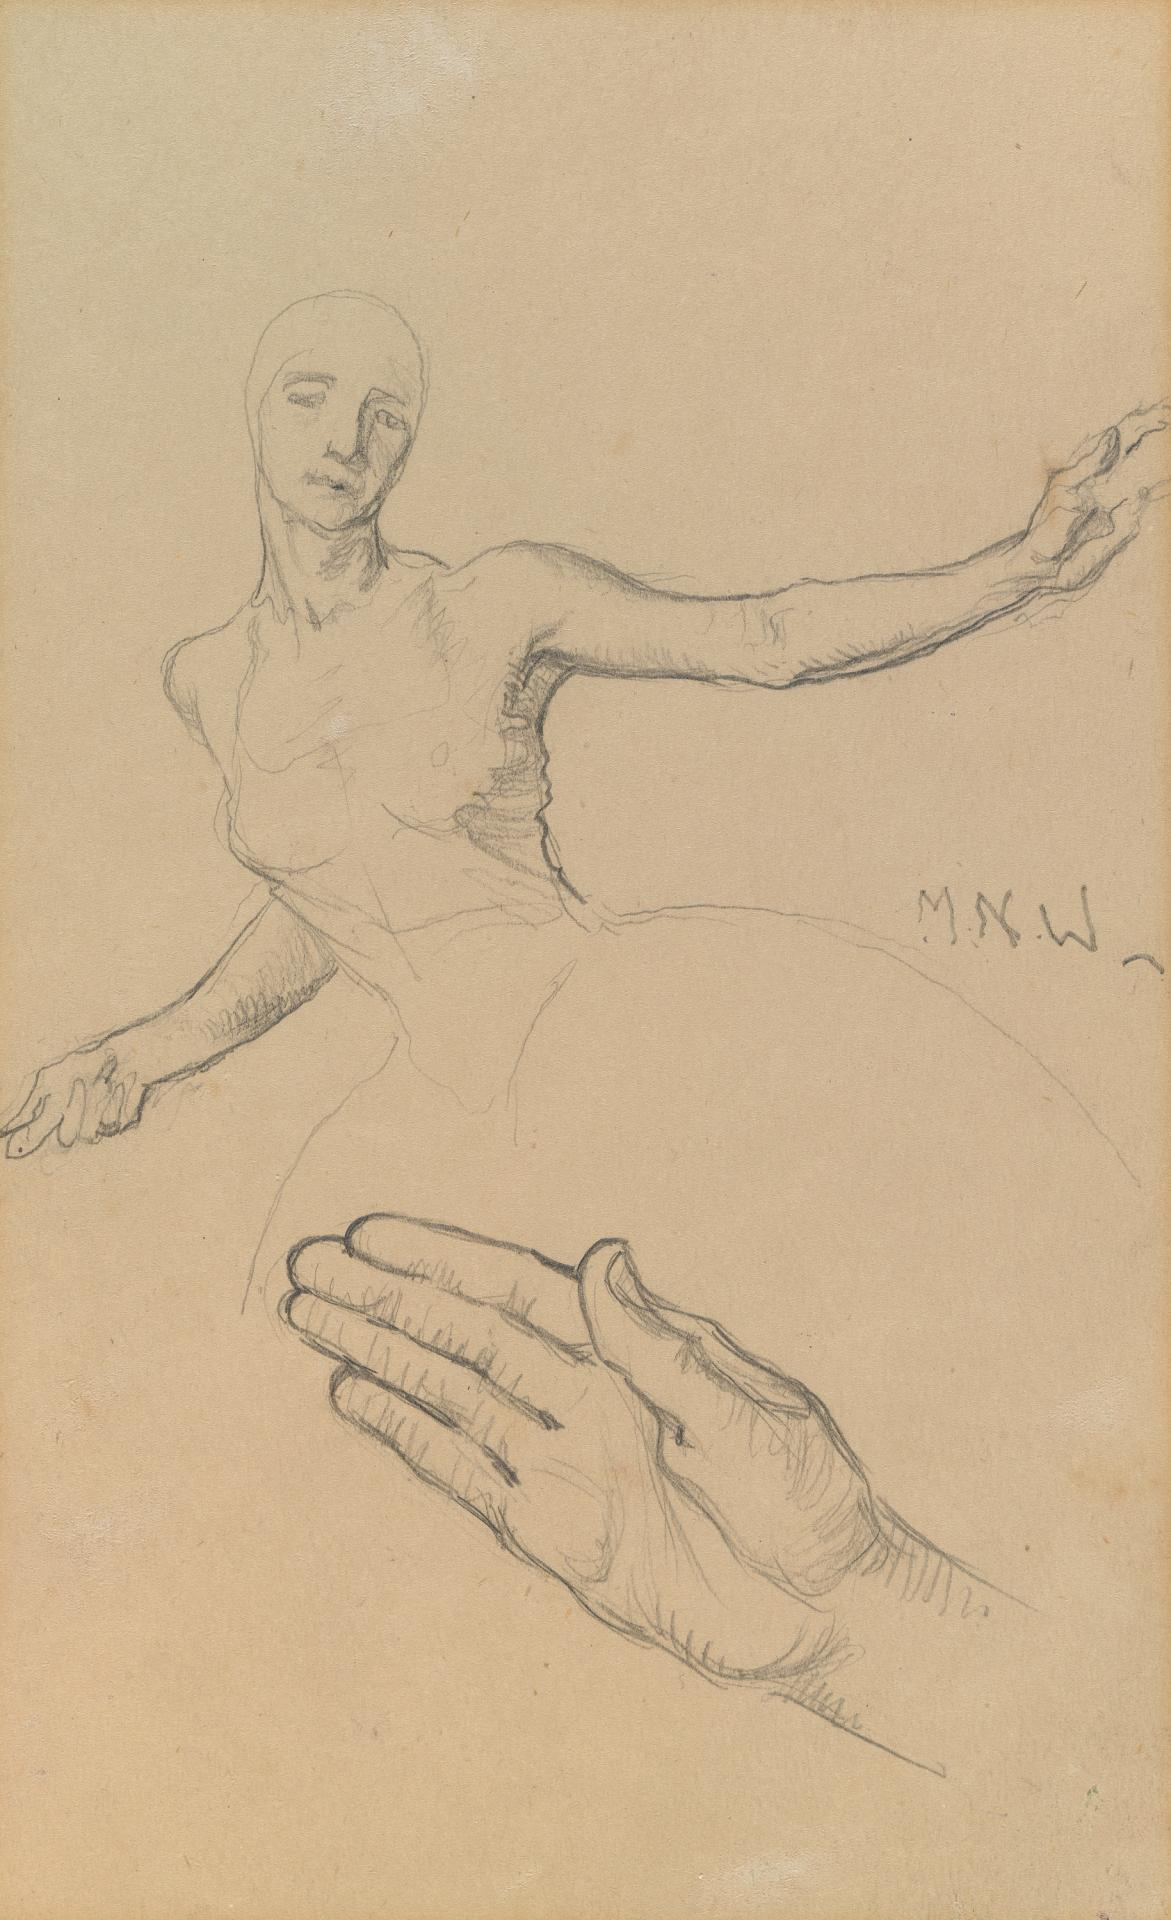 Study for the Myer Murals (Ballerina and hand)